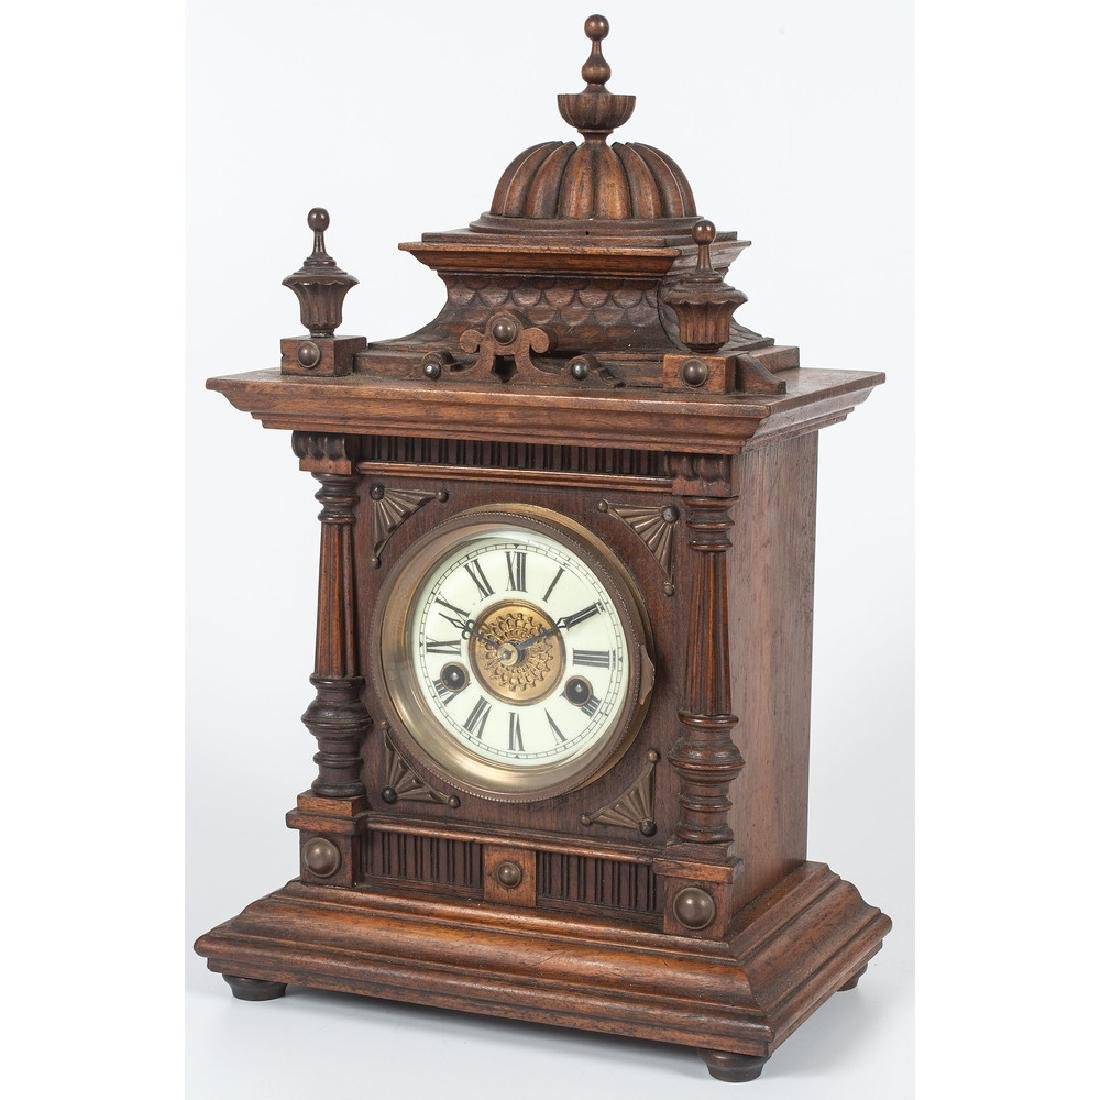 Greenwich Mantel Clock, by W.E. Watts